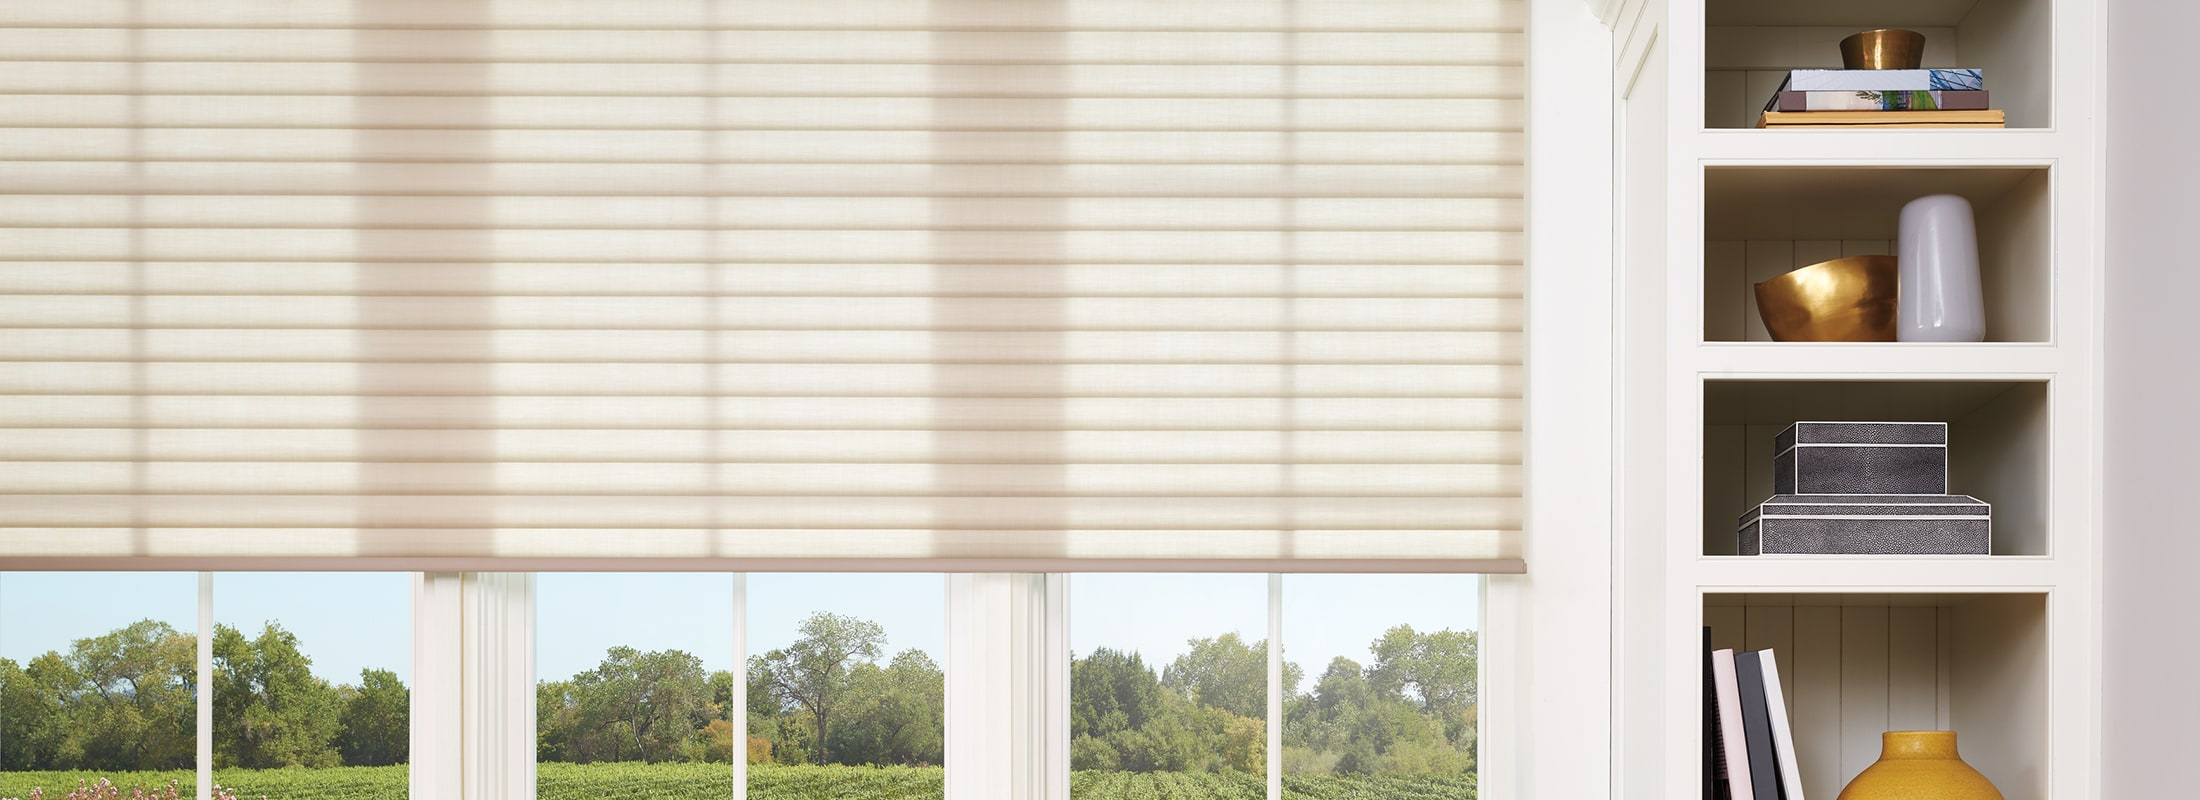 Cellular roller shades in Elan® Burlap - Sonnette